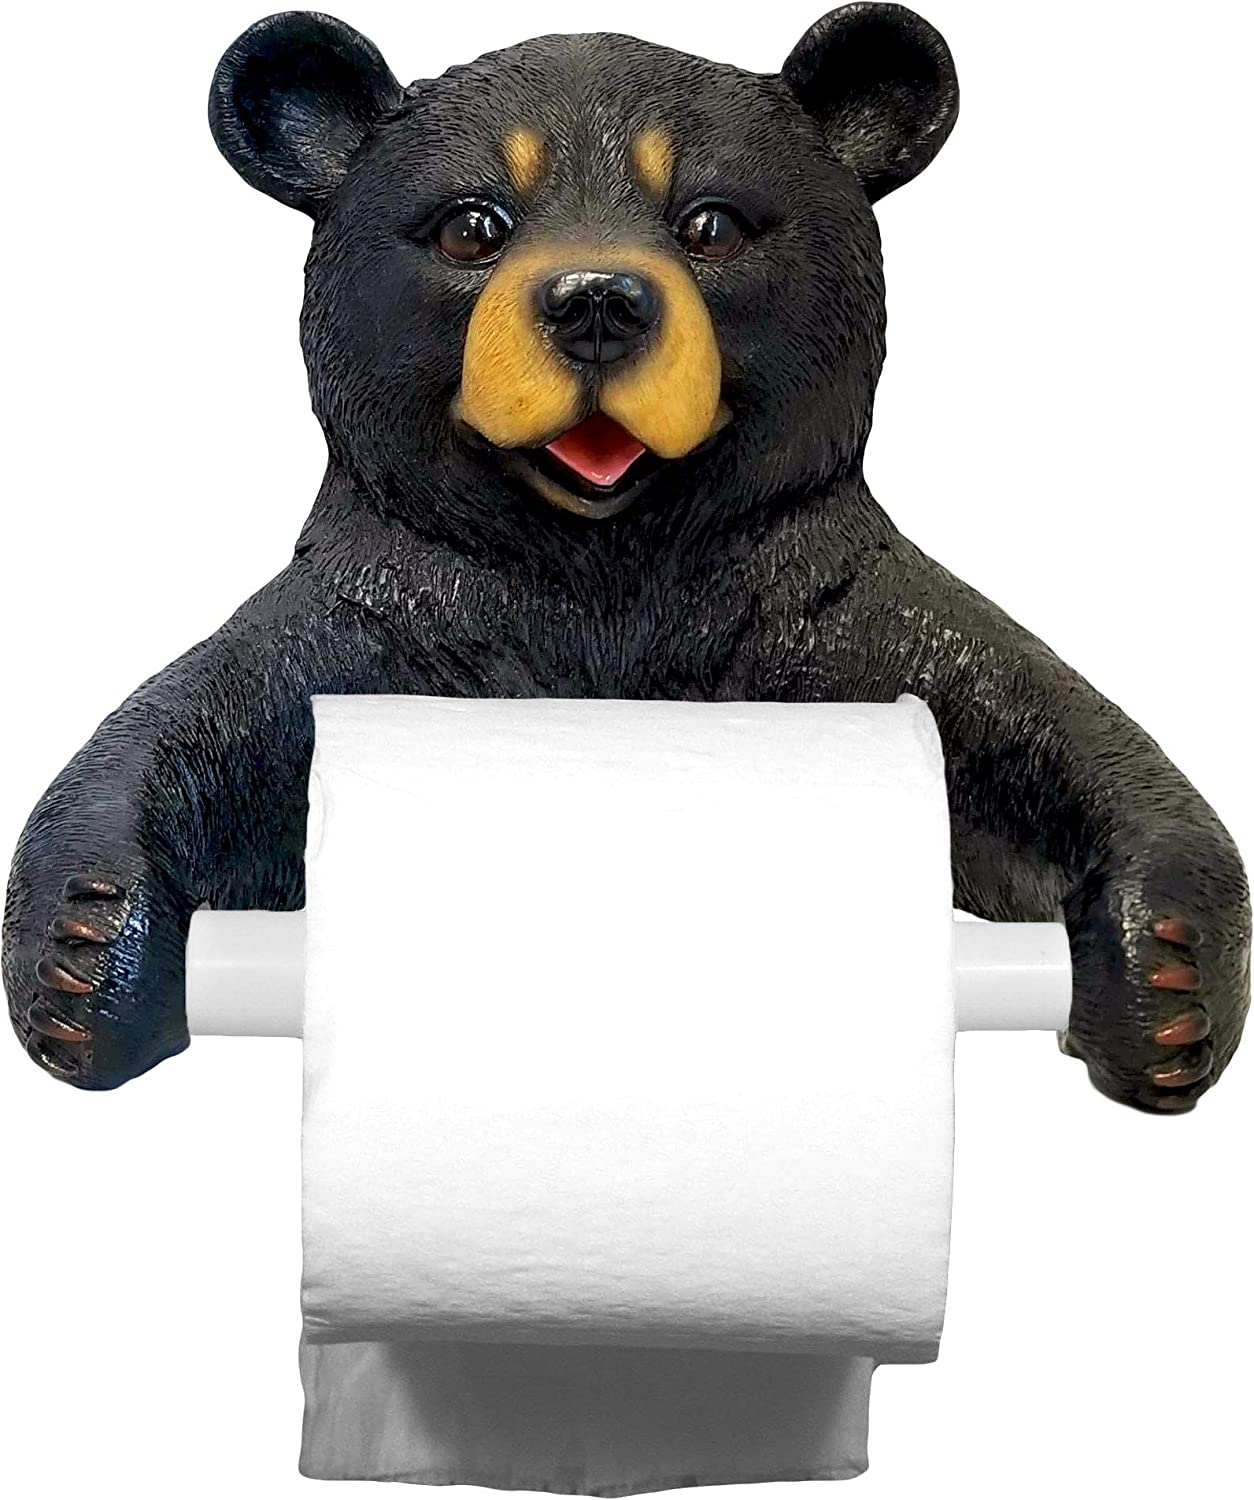 DWK 8-inch Hugo Holder Black Bear Toilet Paper Holder Rustic Woodland Forest Themed Kitchen Bathroom Cabin Decor